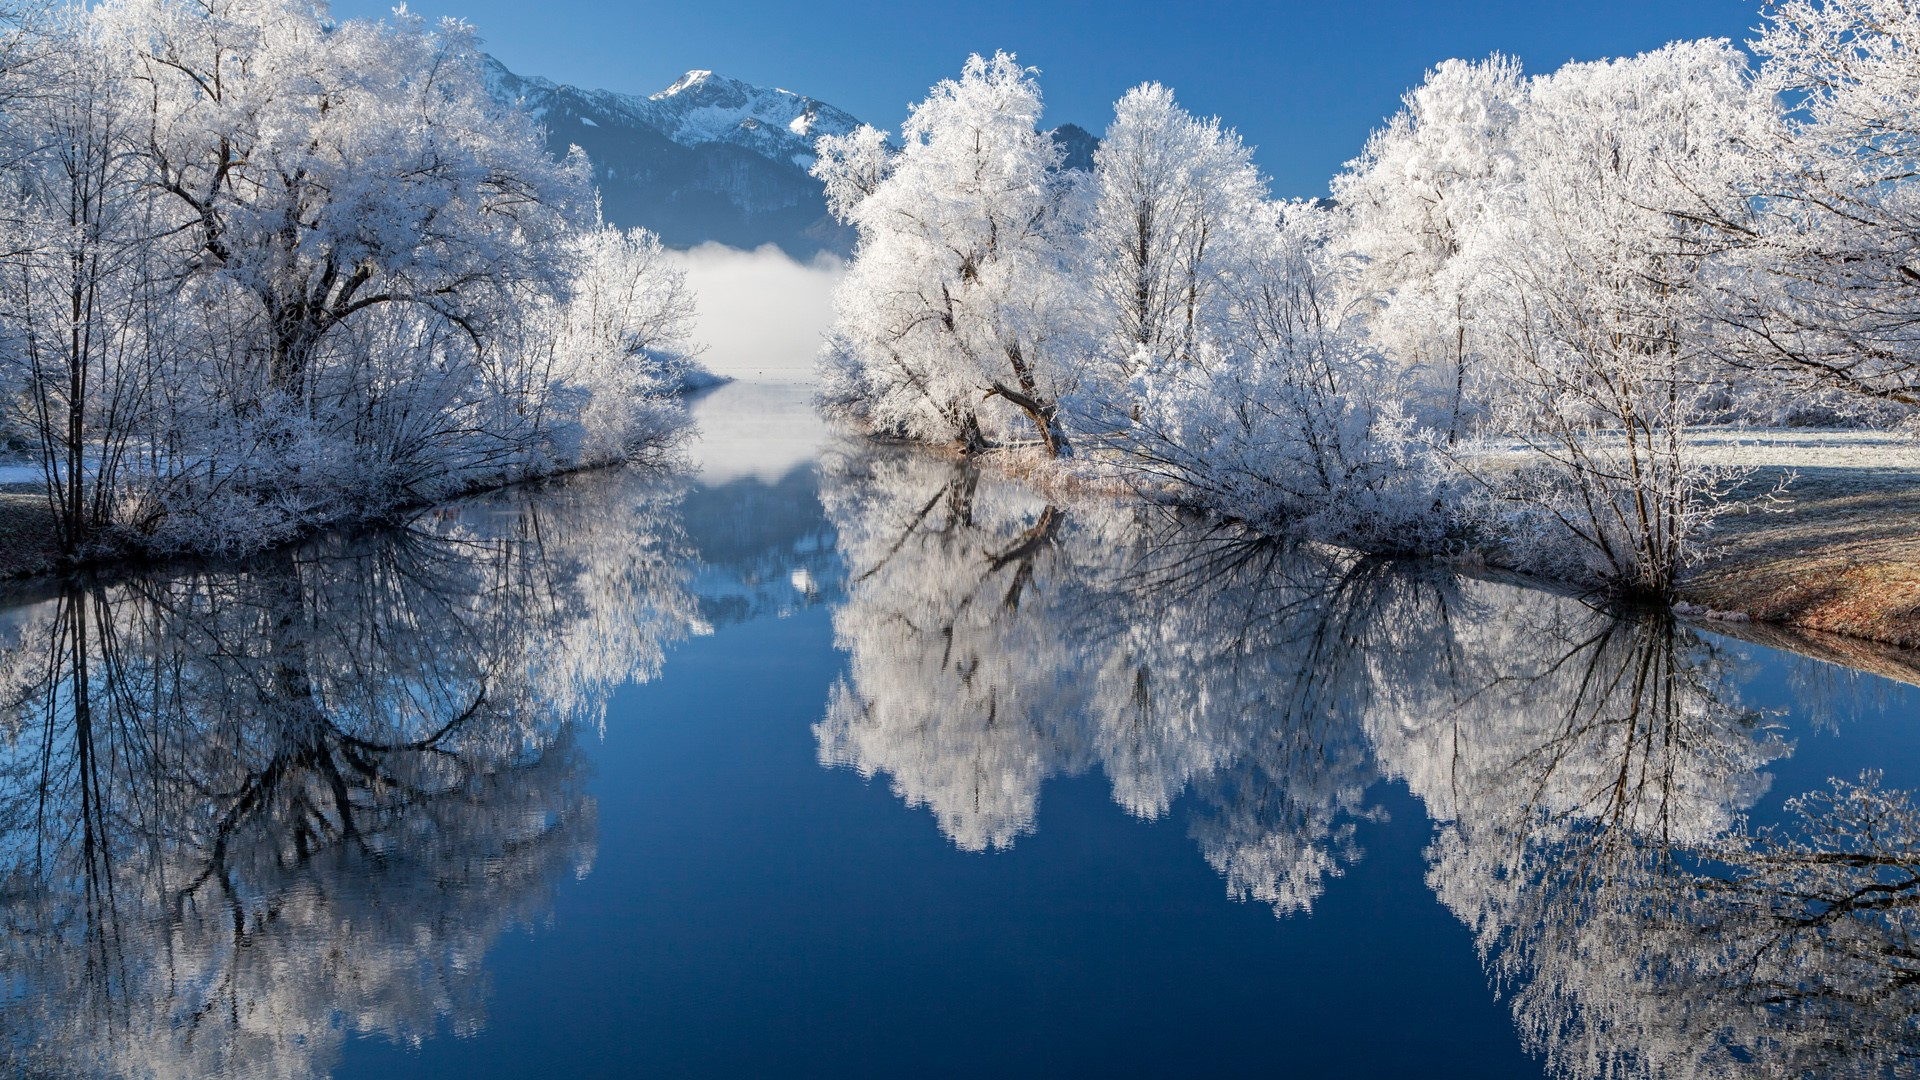 General 1920x1080 nature landscape trees river snow mountains grass Loisach River Bavaria Germany reflection frost calm waters